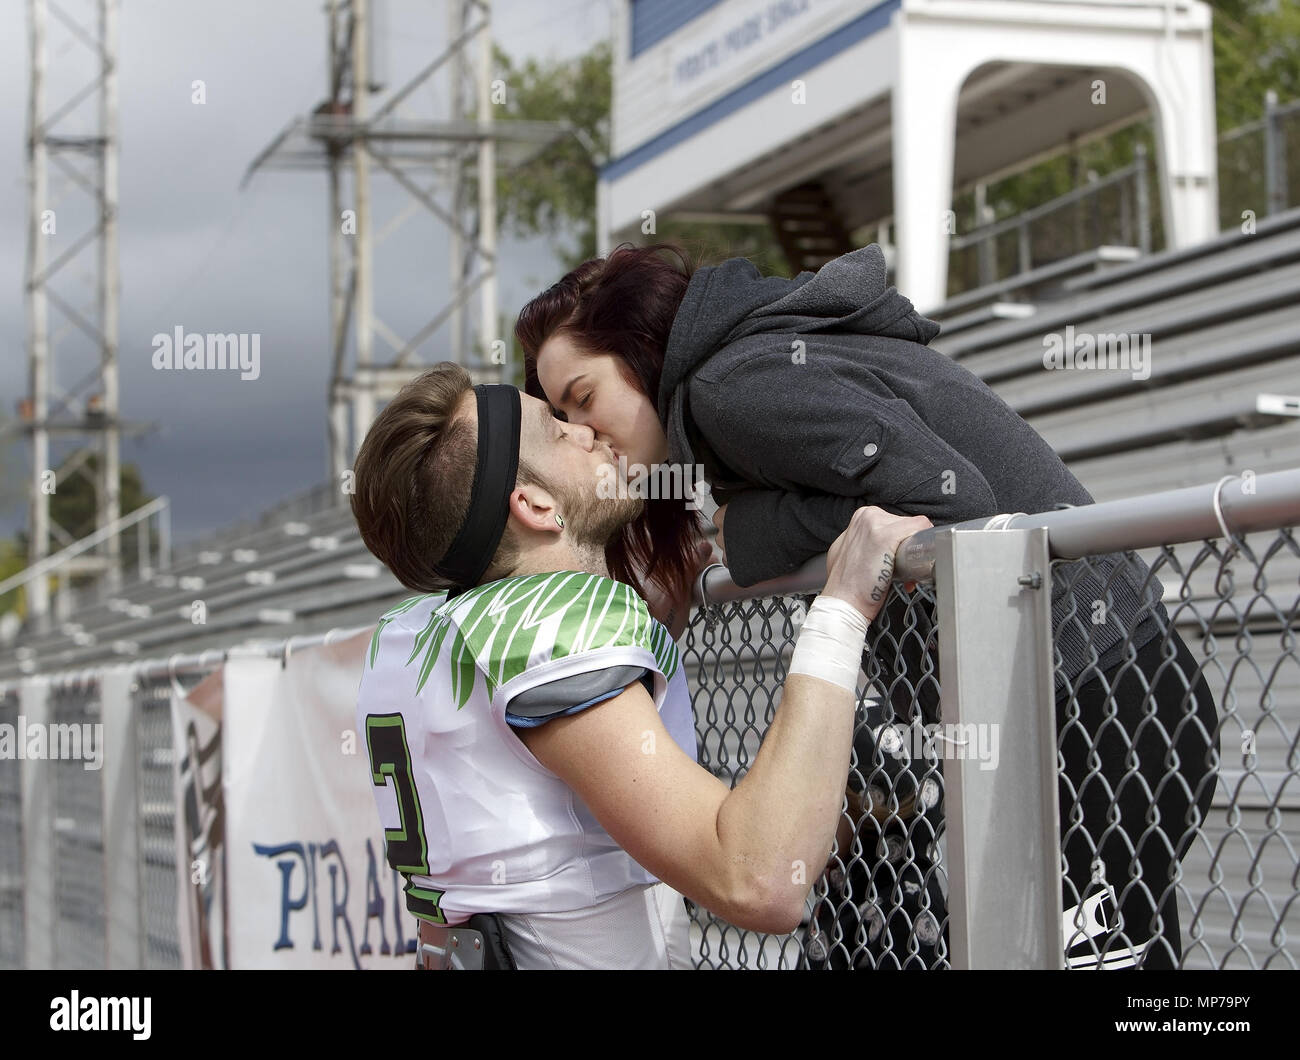 Photos amp; Images Girl Alamy Ot O1qnp8wR